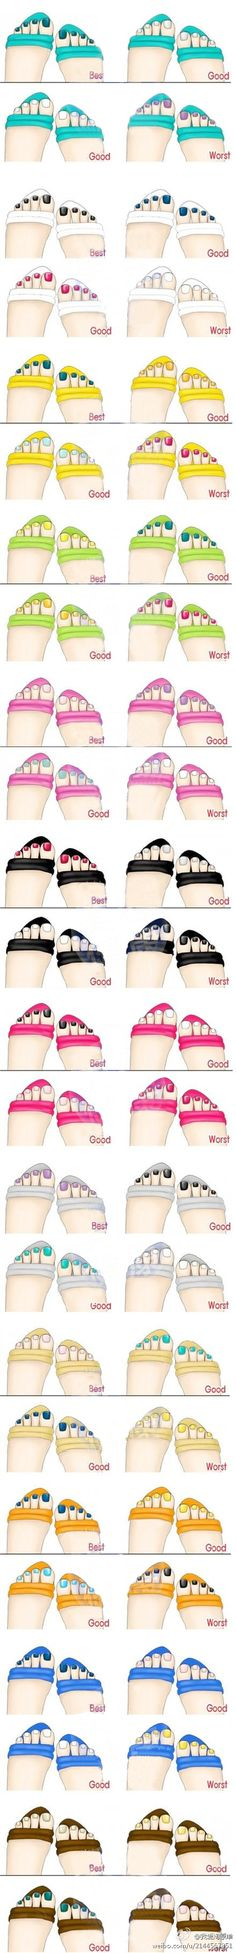 Haha.. I thought this was interesting. Wondering what the best pedi color will go with your sandals/open toe shoes?